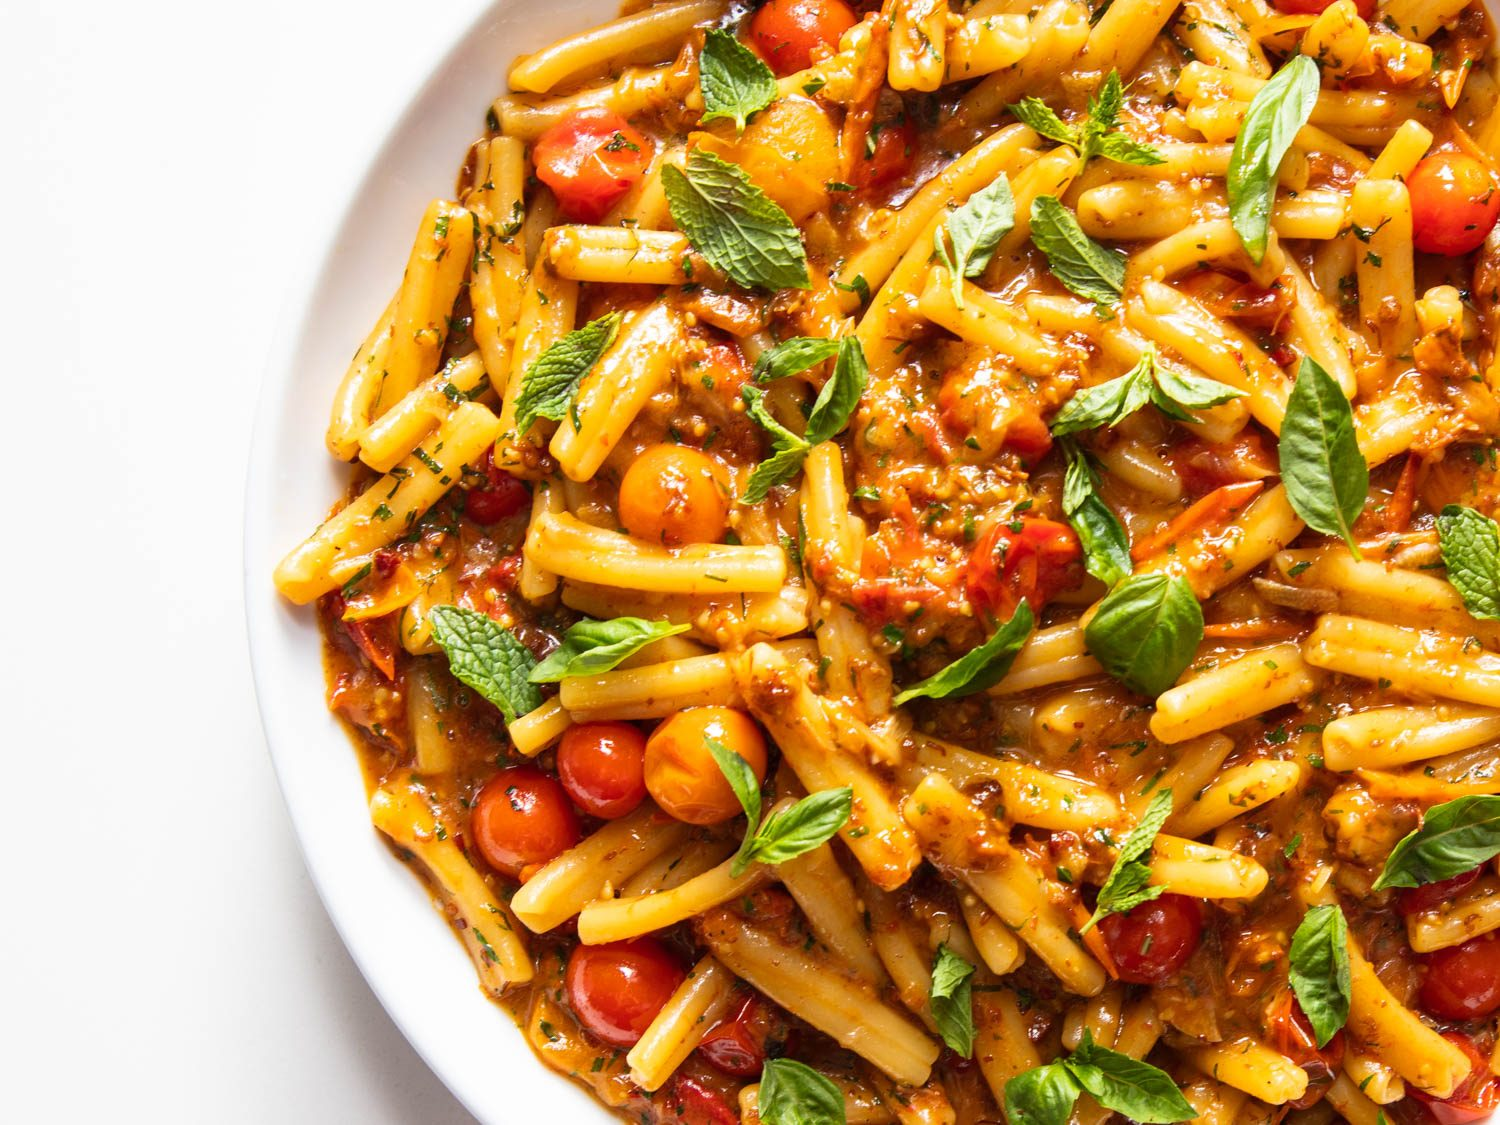 Pasta With Burst Cherry Tomatoes and XO Sauce